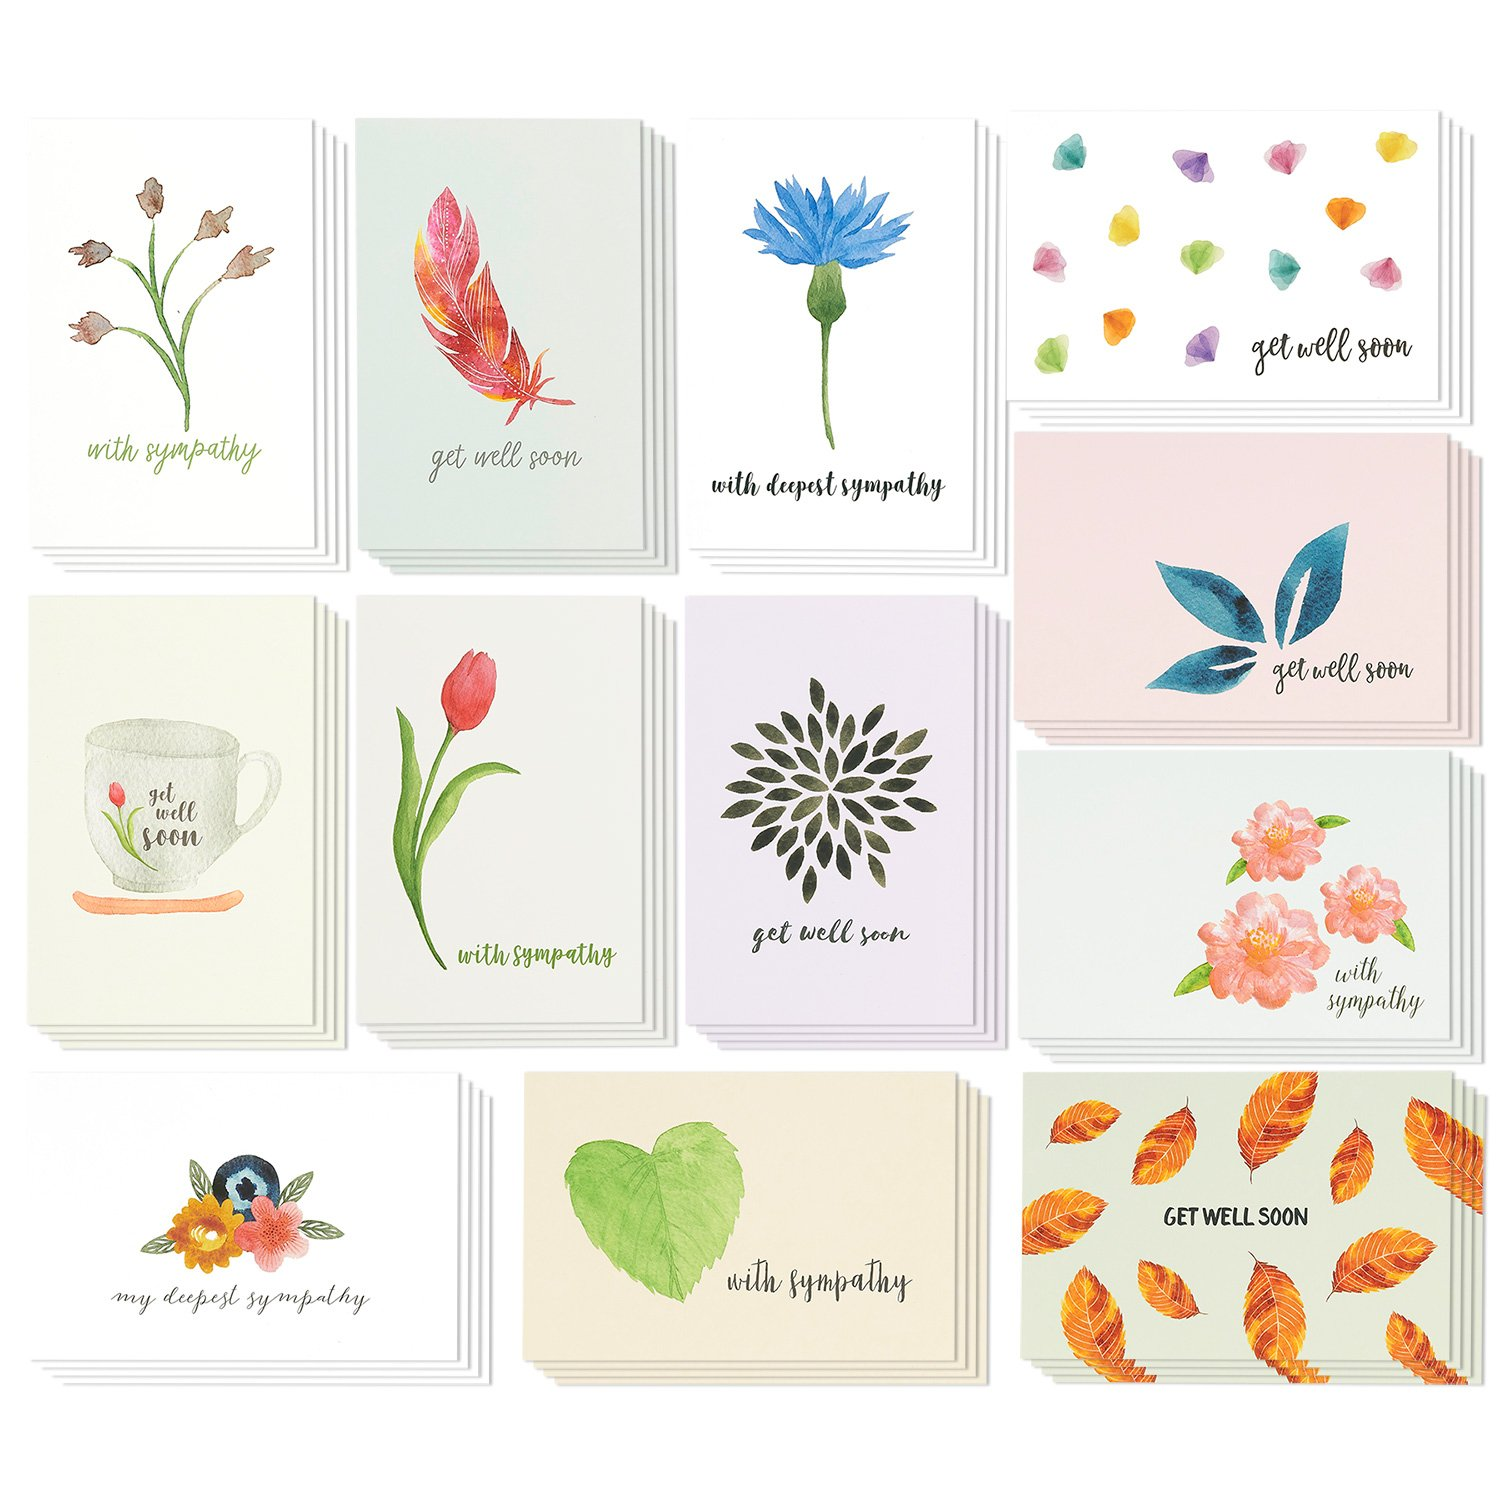 Amazon sympathy cards 48 pack sympathy cards bulk greeting amazon sympathy cards 48 pack sympathy cards bulk greeting cards sympathy watercolor floral foliage designs envelopes included assorted sympathy izmirmasajfo